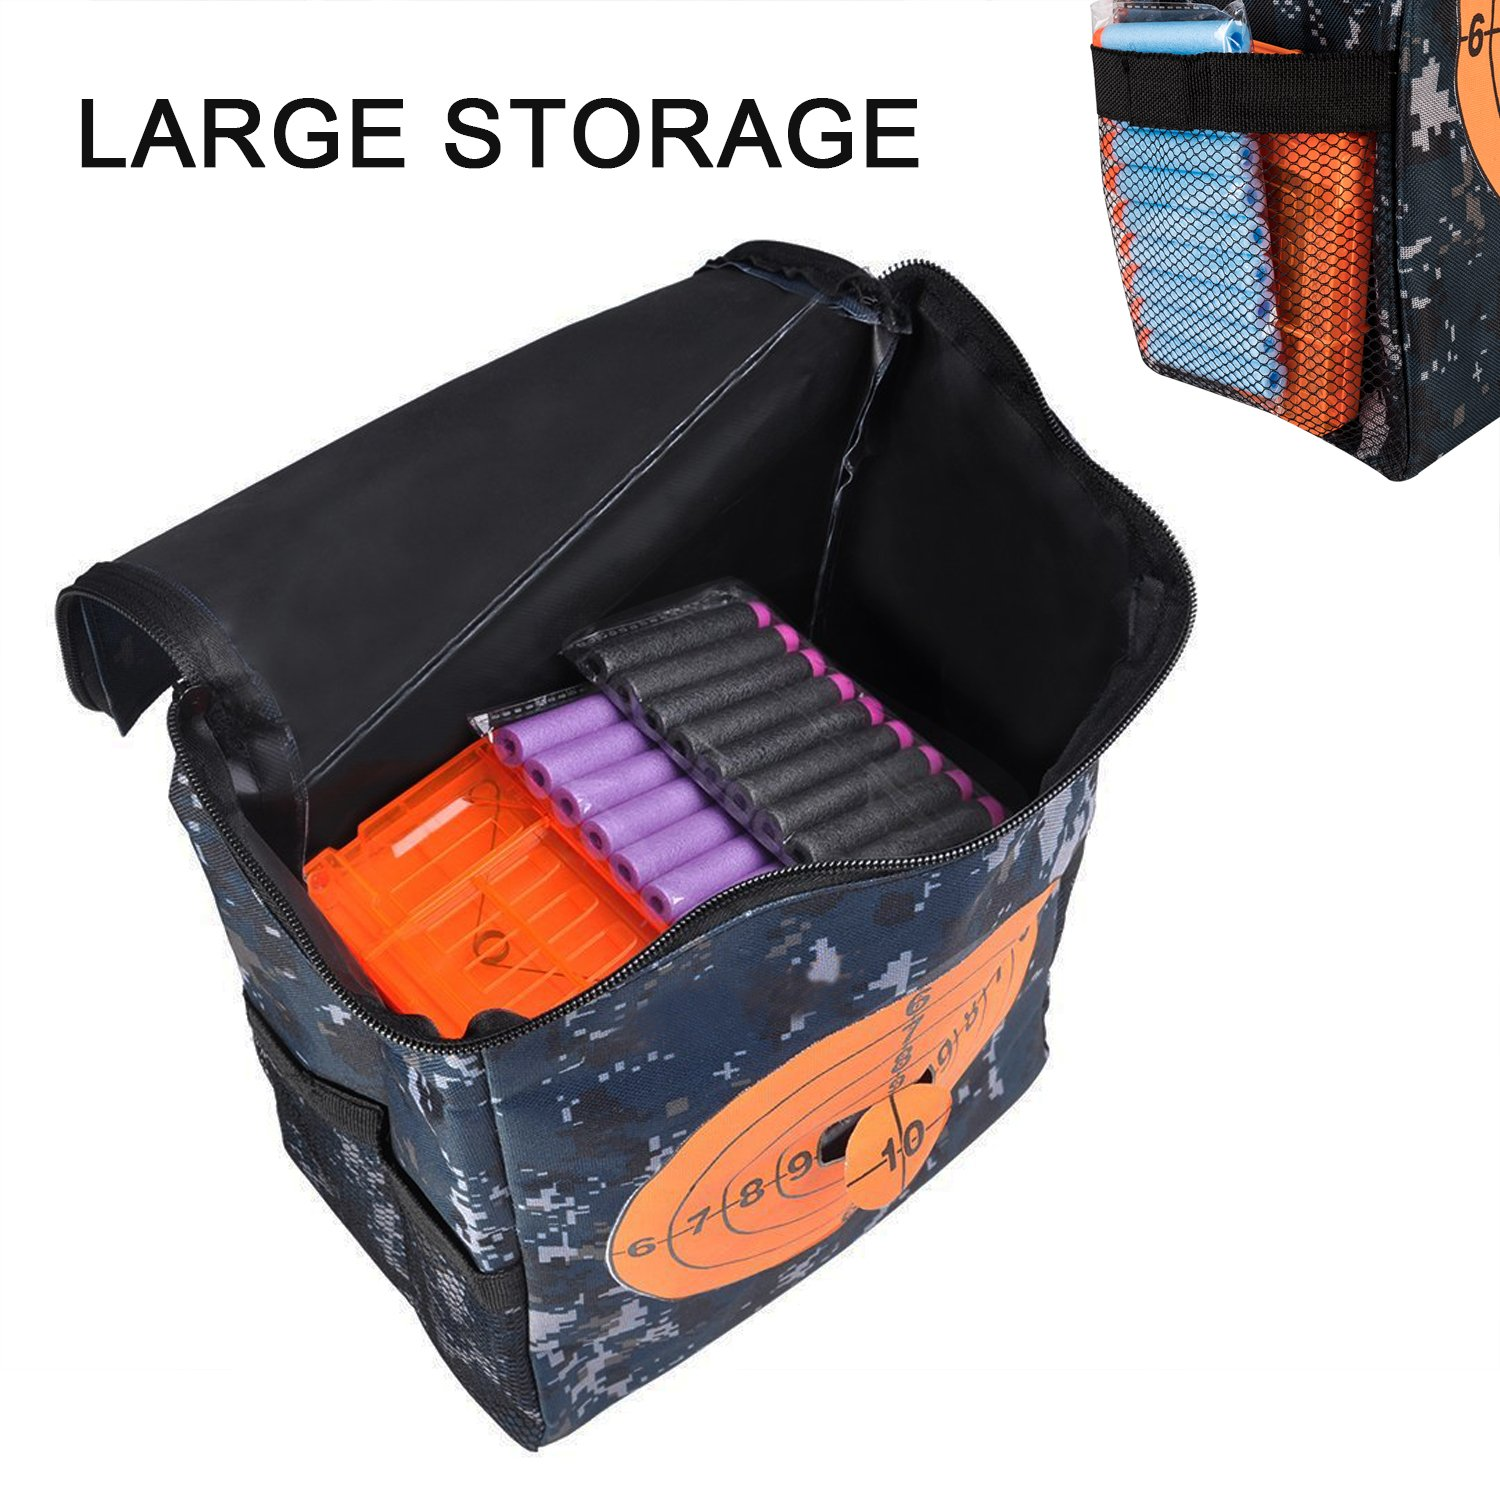 Mega xdy mylany Target Pouch Storage Carry Equipment Bag for Nerf Guns Darts N Strike Elite Rival Series